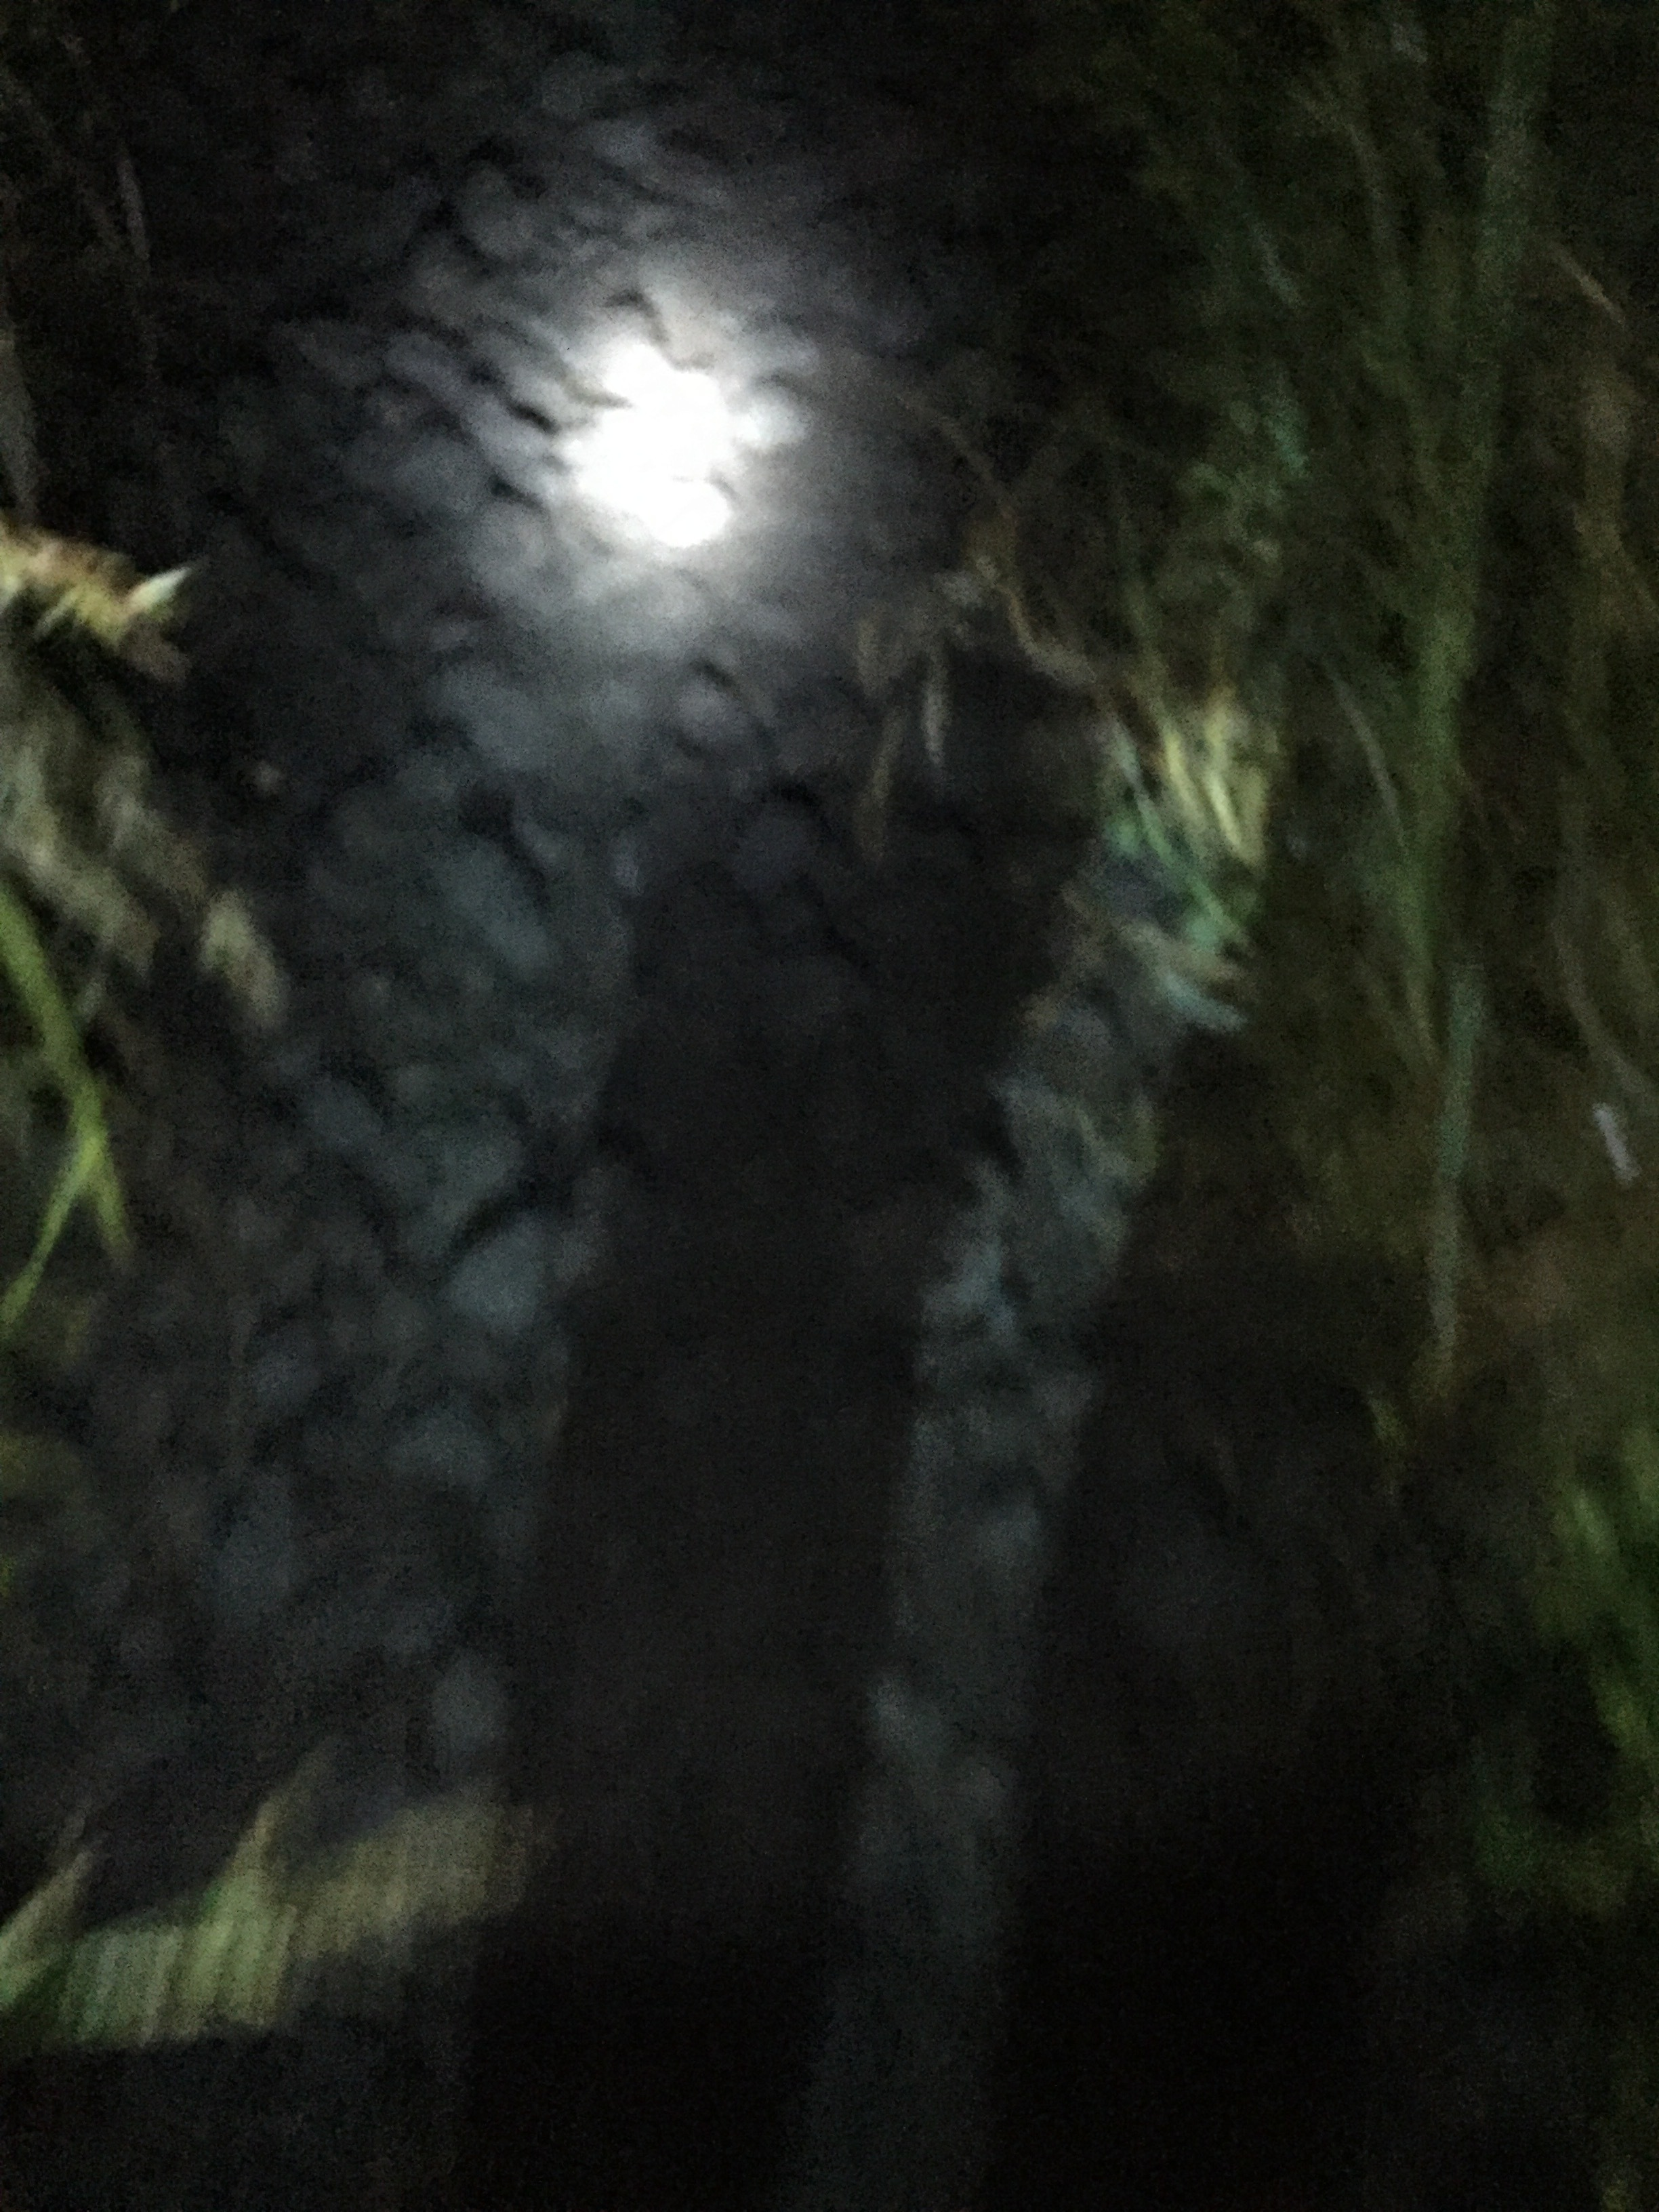 The first half of the hike with the flashlight